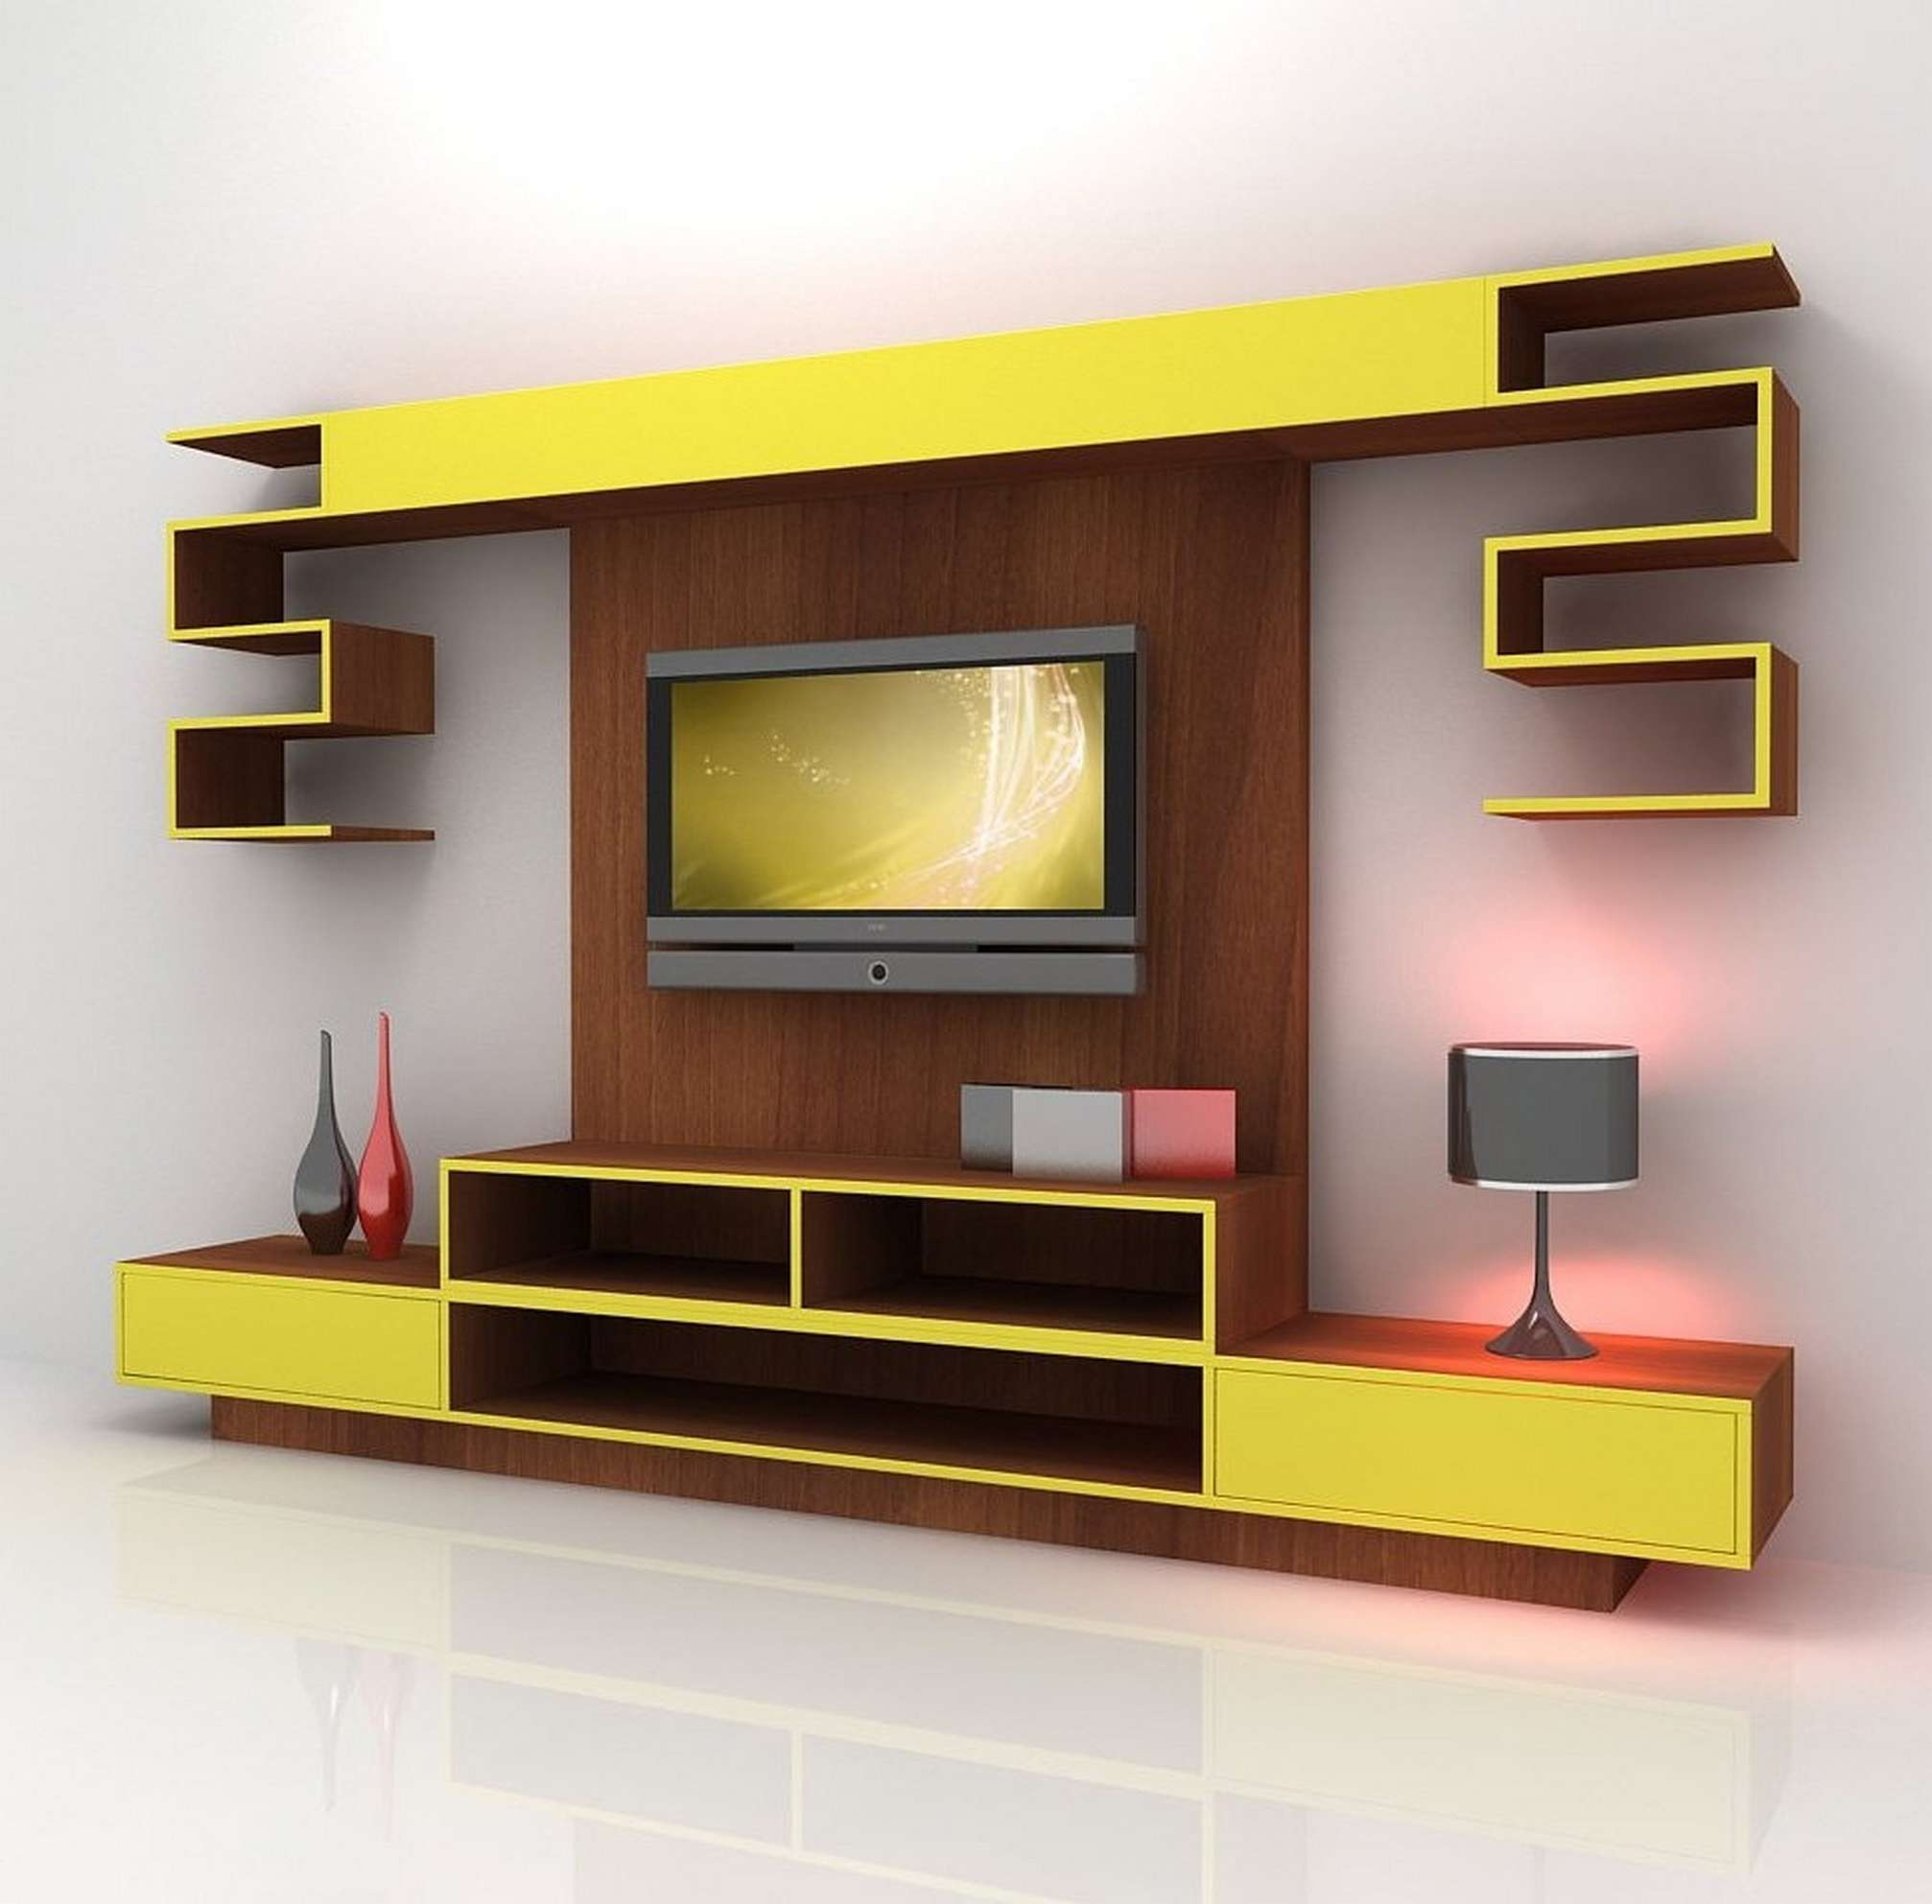 Living Room Ceilling Light Decor Wooden Table Ideas Modern Tv Regarding Modern Tv Cabinets Designs (View 17 of 20)